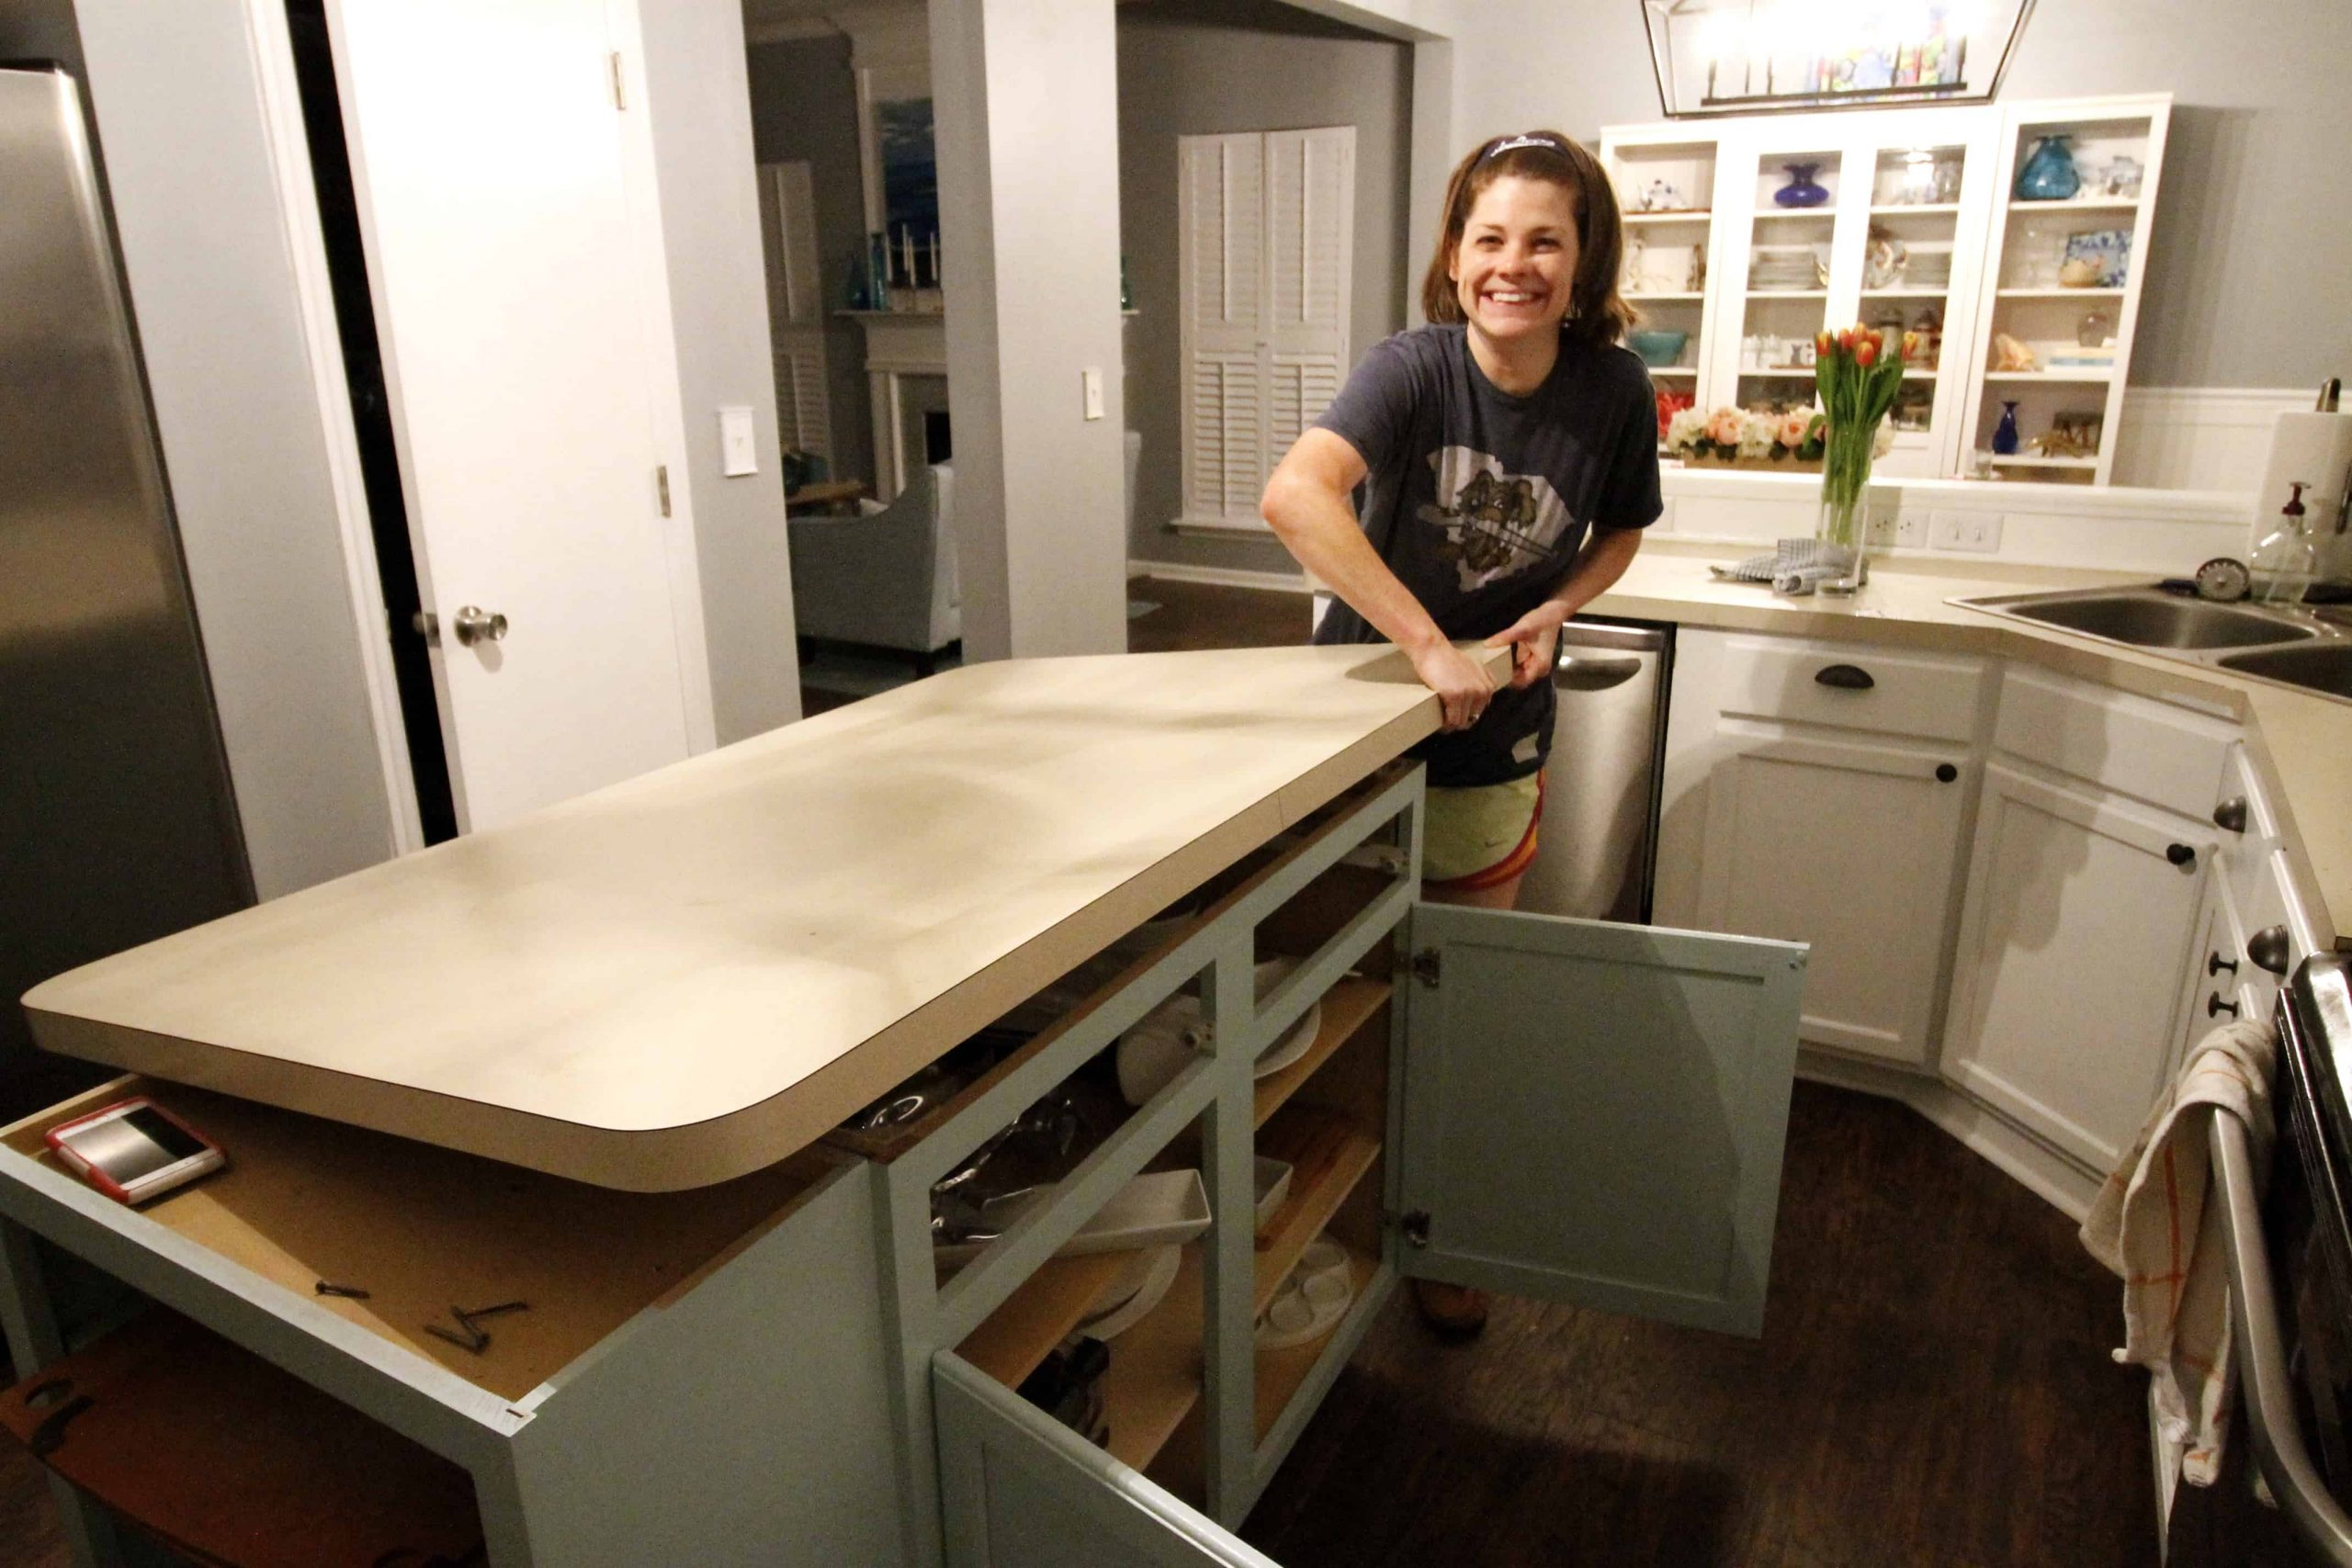 How to Remove Laminate Countertop & Backsplash Without Damaging Cabinets